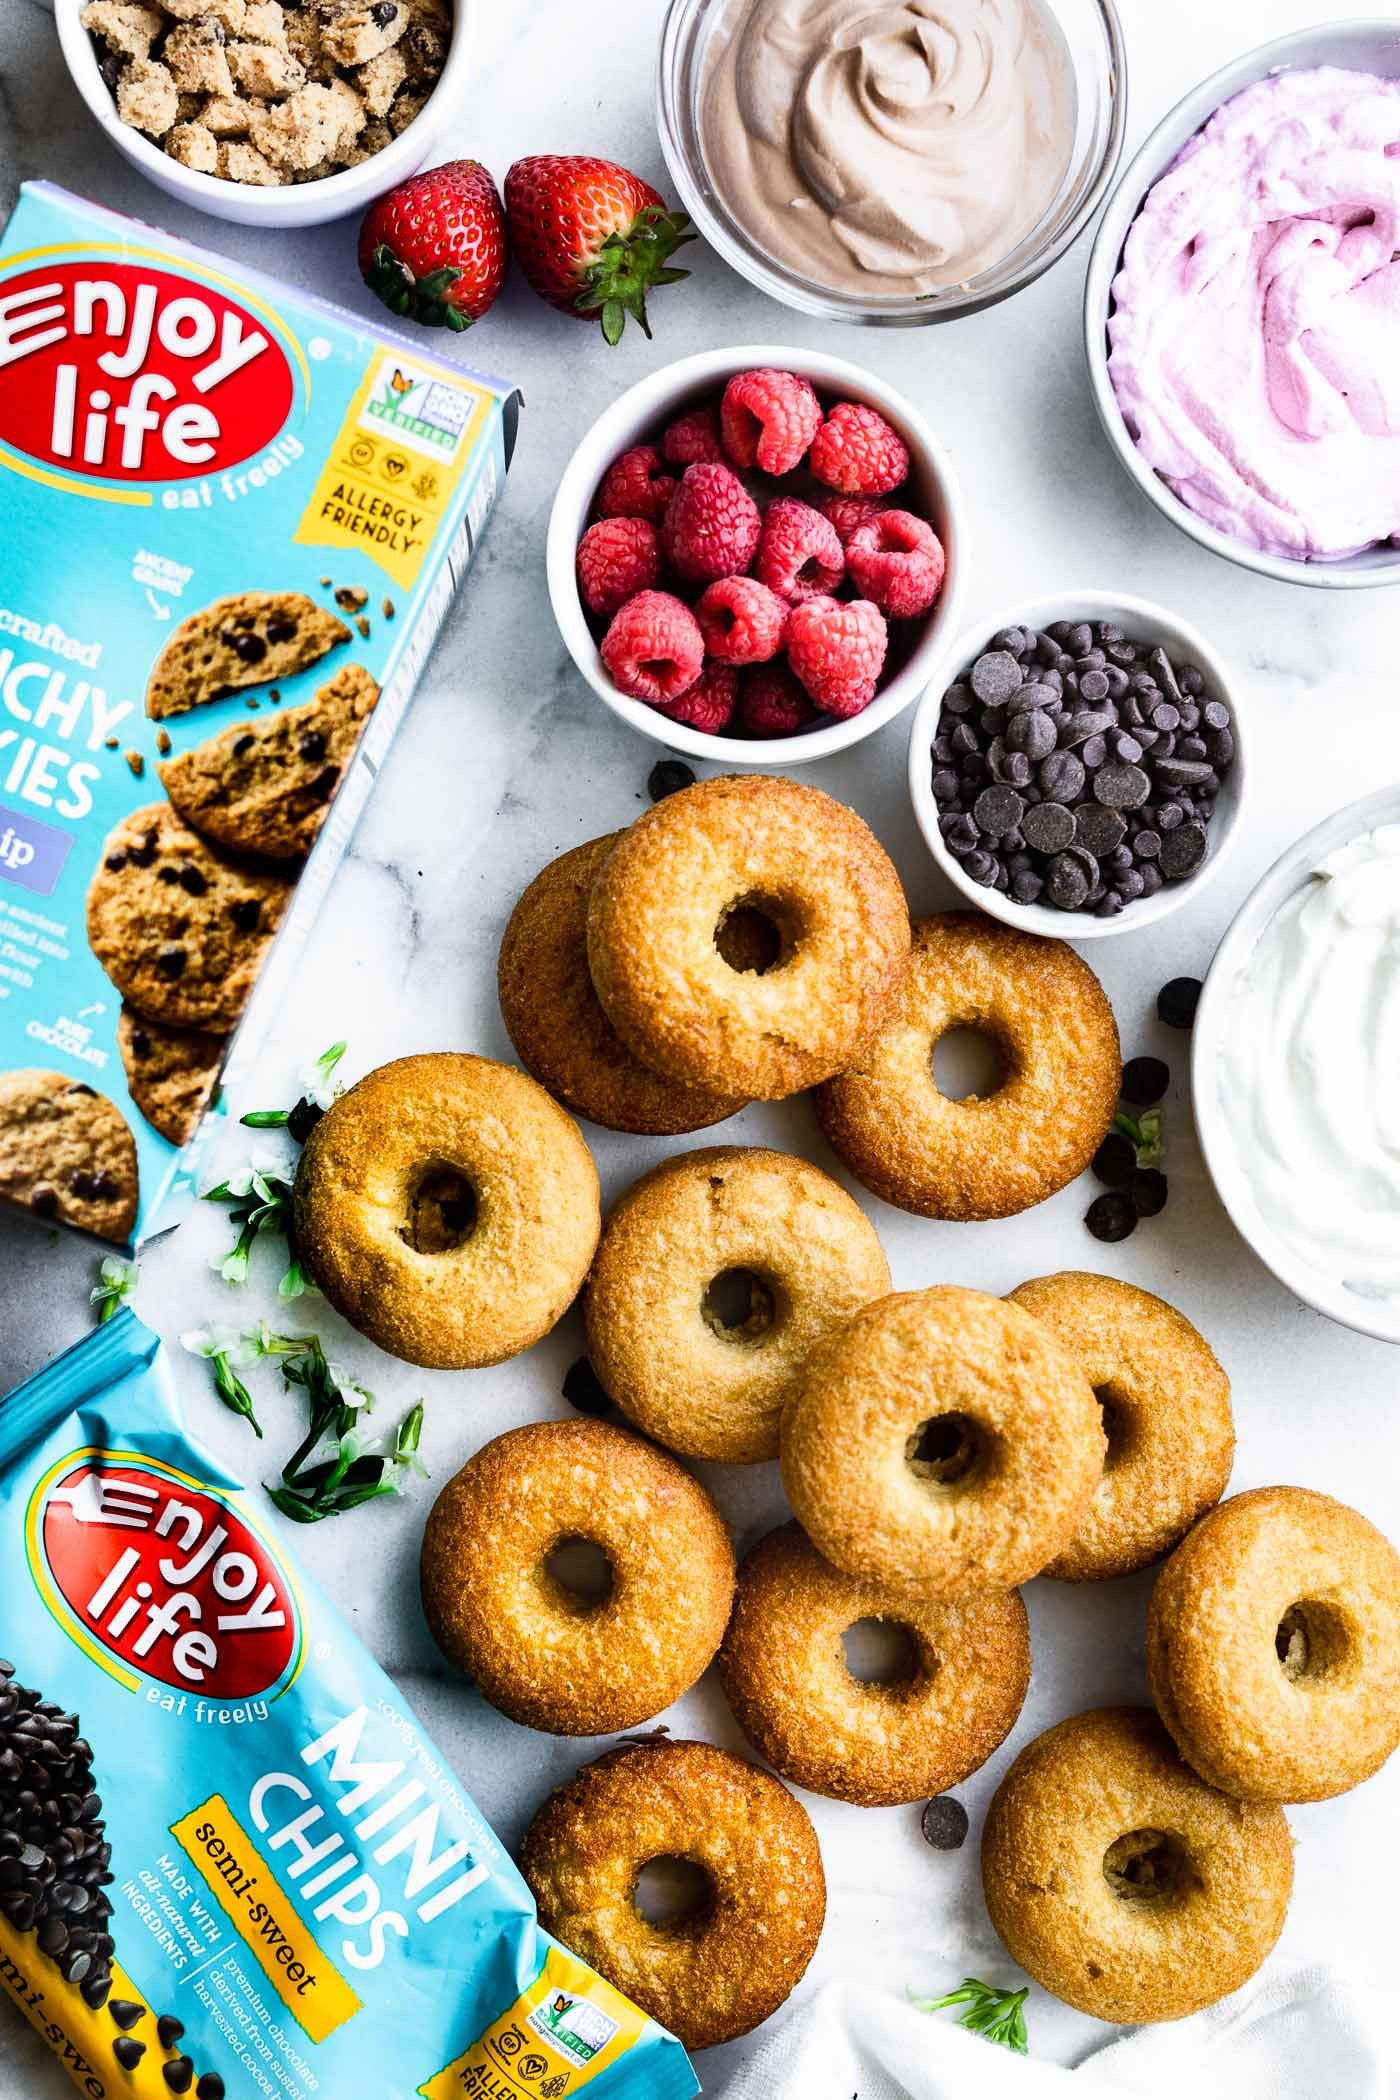 enjoy life foods chocolates and donuts